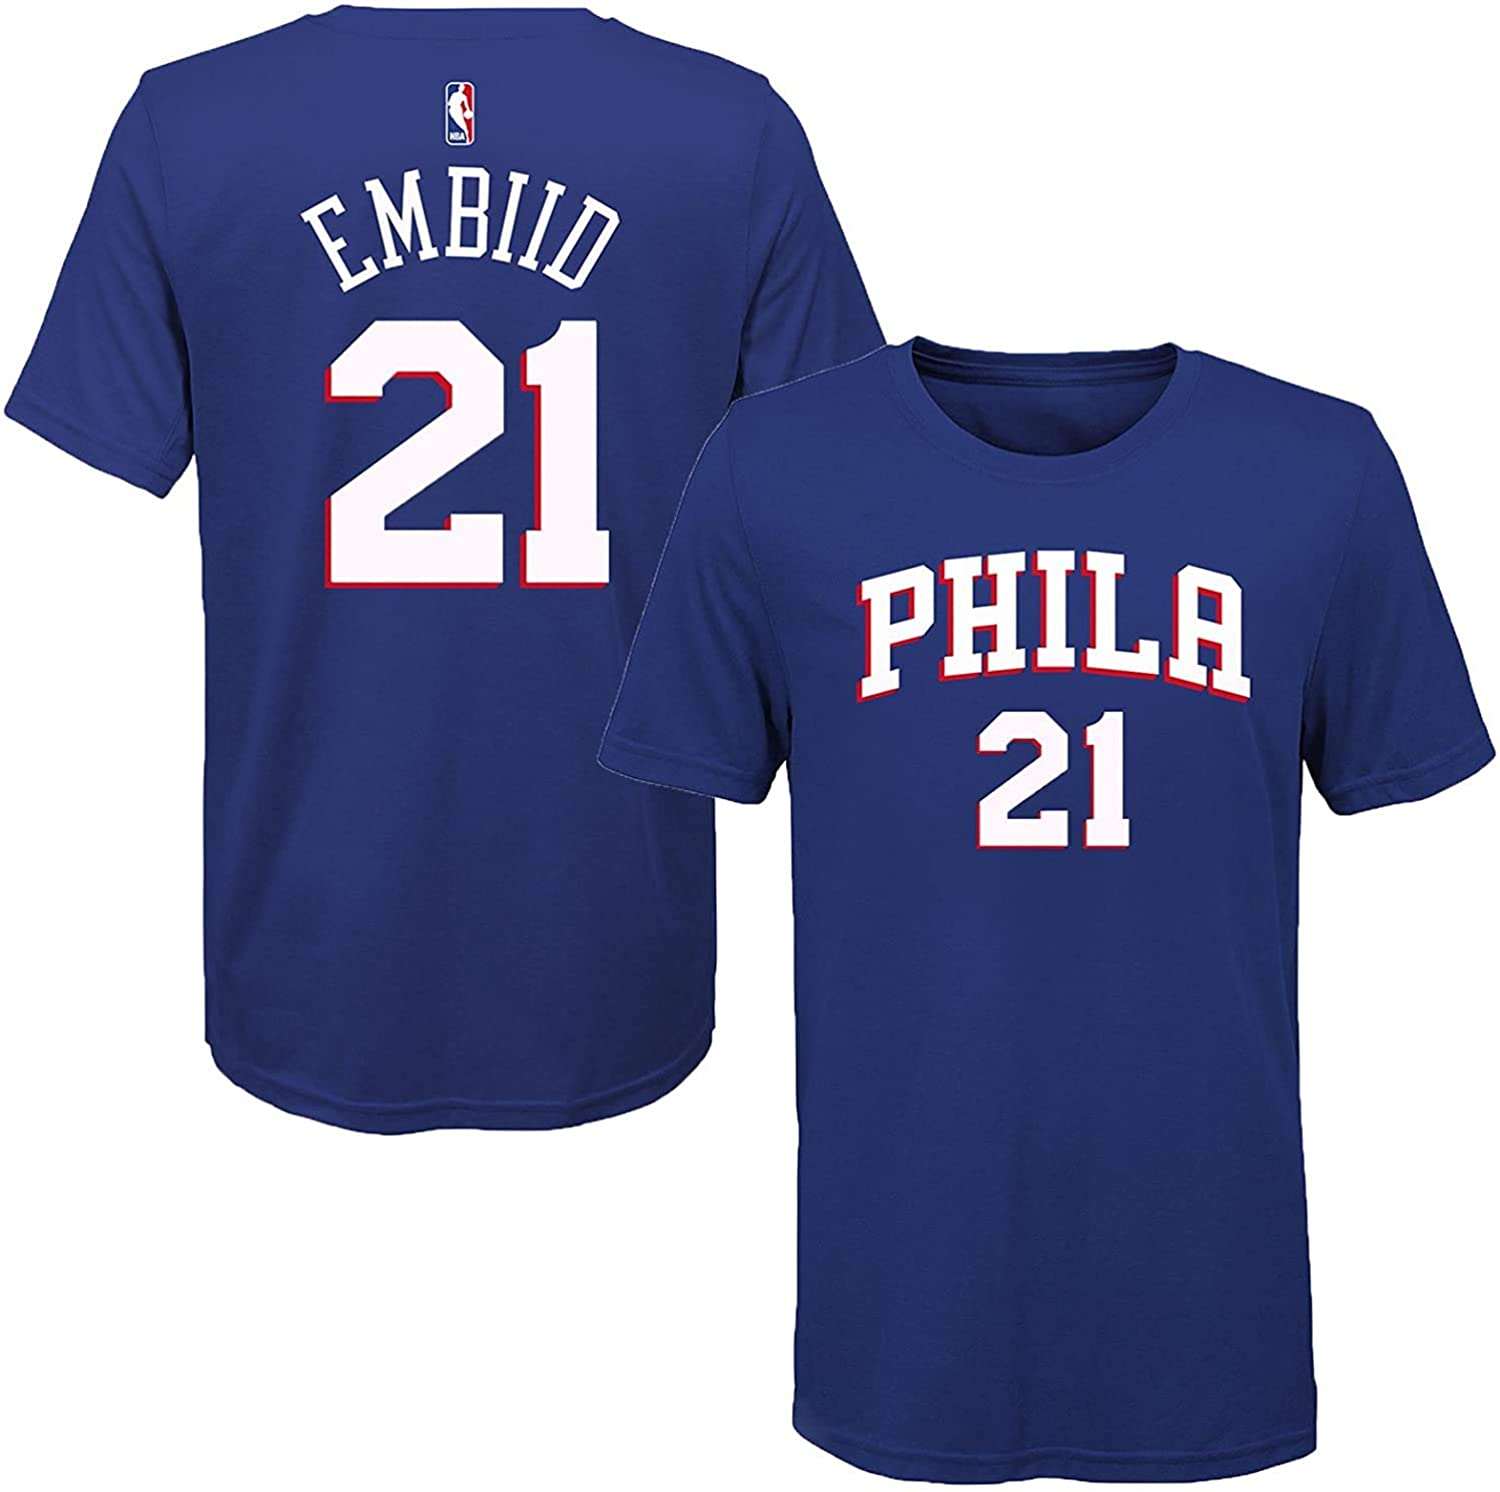 OuterStuff Joel Embiid Philadelphia 76ers Blue Youth Name & Number T-Shirt (Small 8)